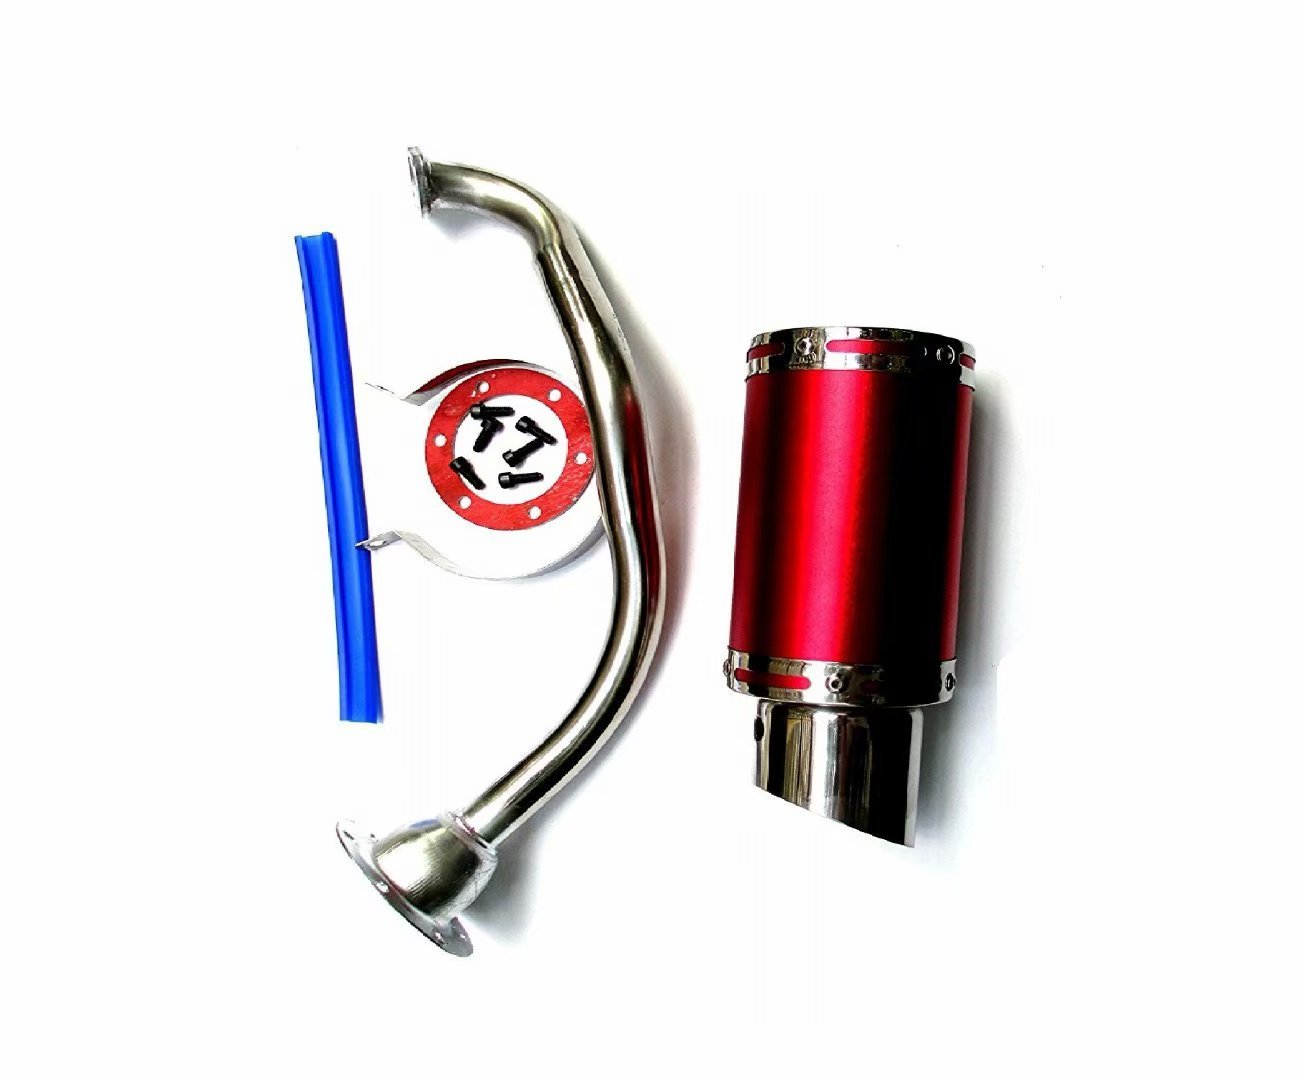 High Performance Exhaust System Muffler for GY6 50cc-400cc 4 Stroke Scooters ATV Go Kart NEW Red